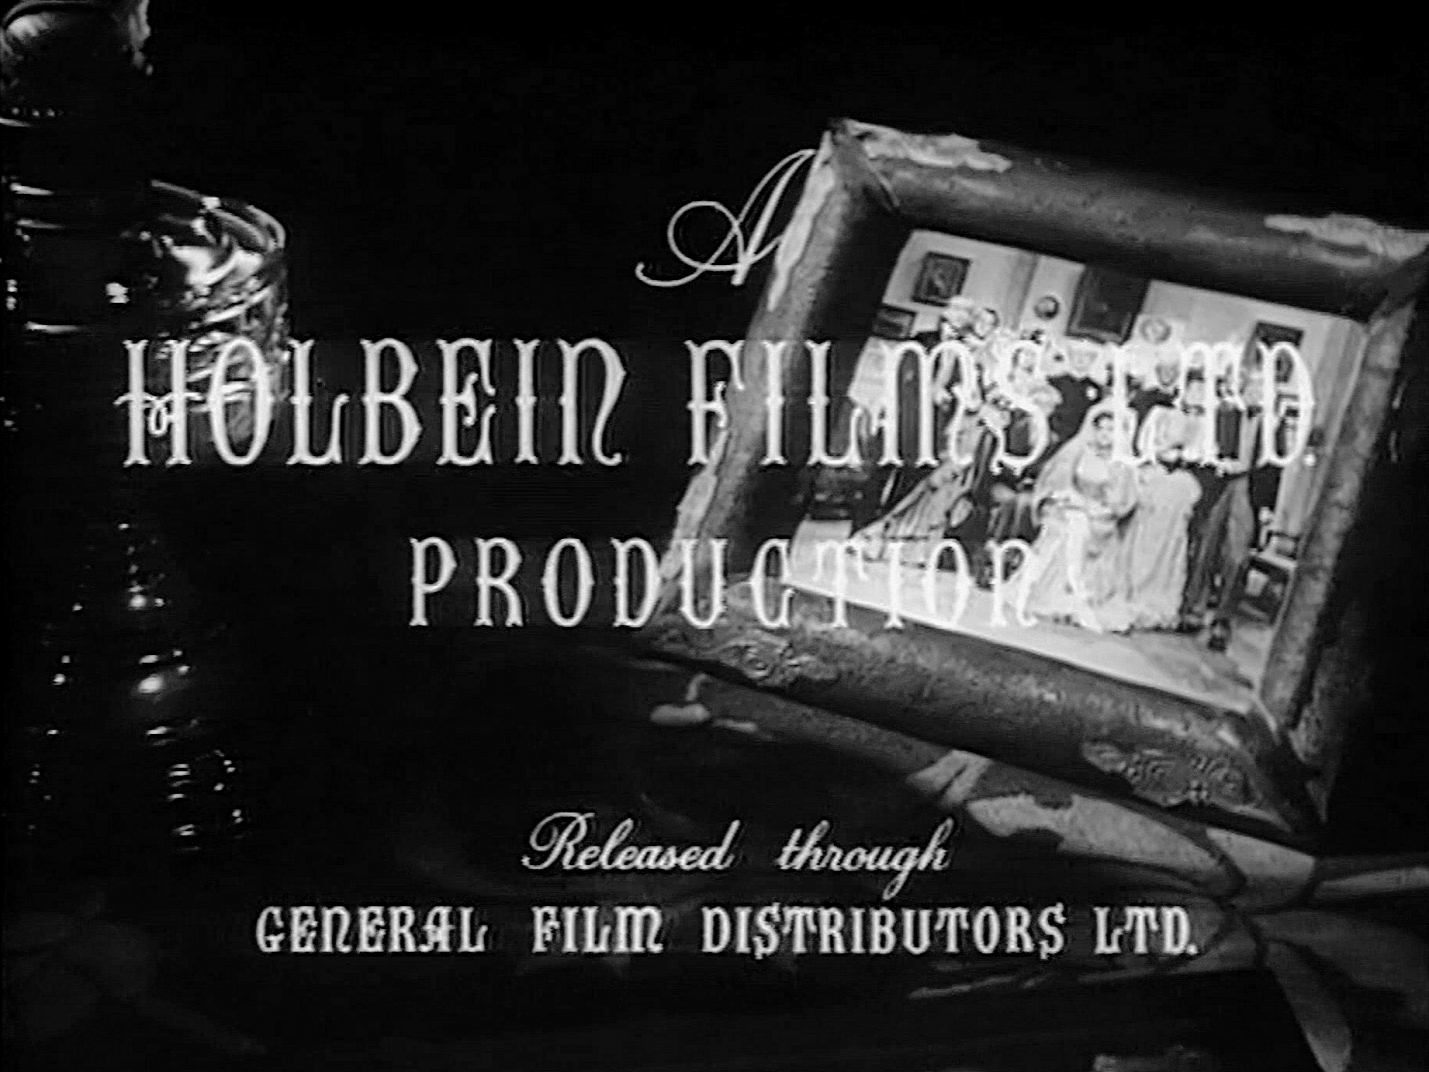 Main title from The Master of Bankdam (1947) (3). A Holbein Films production released through General Film Distributors Ltd